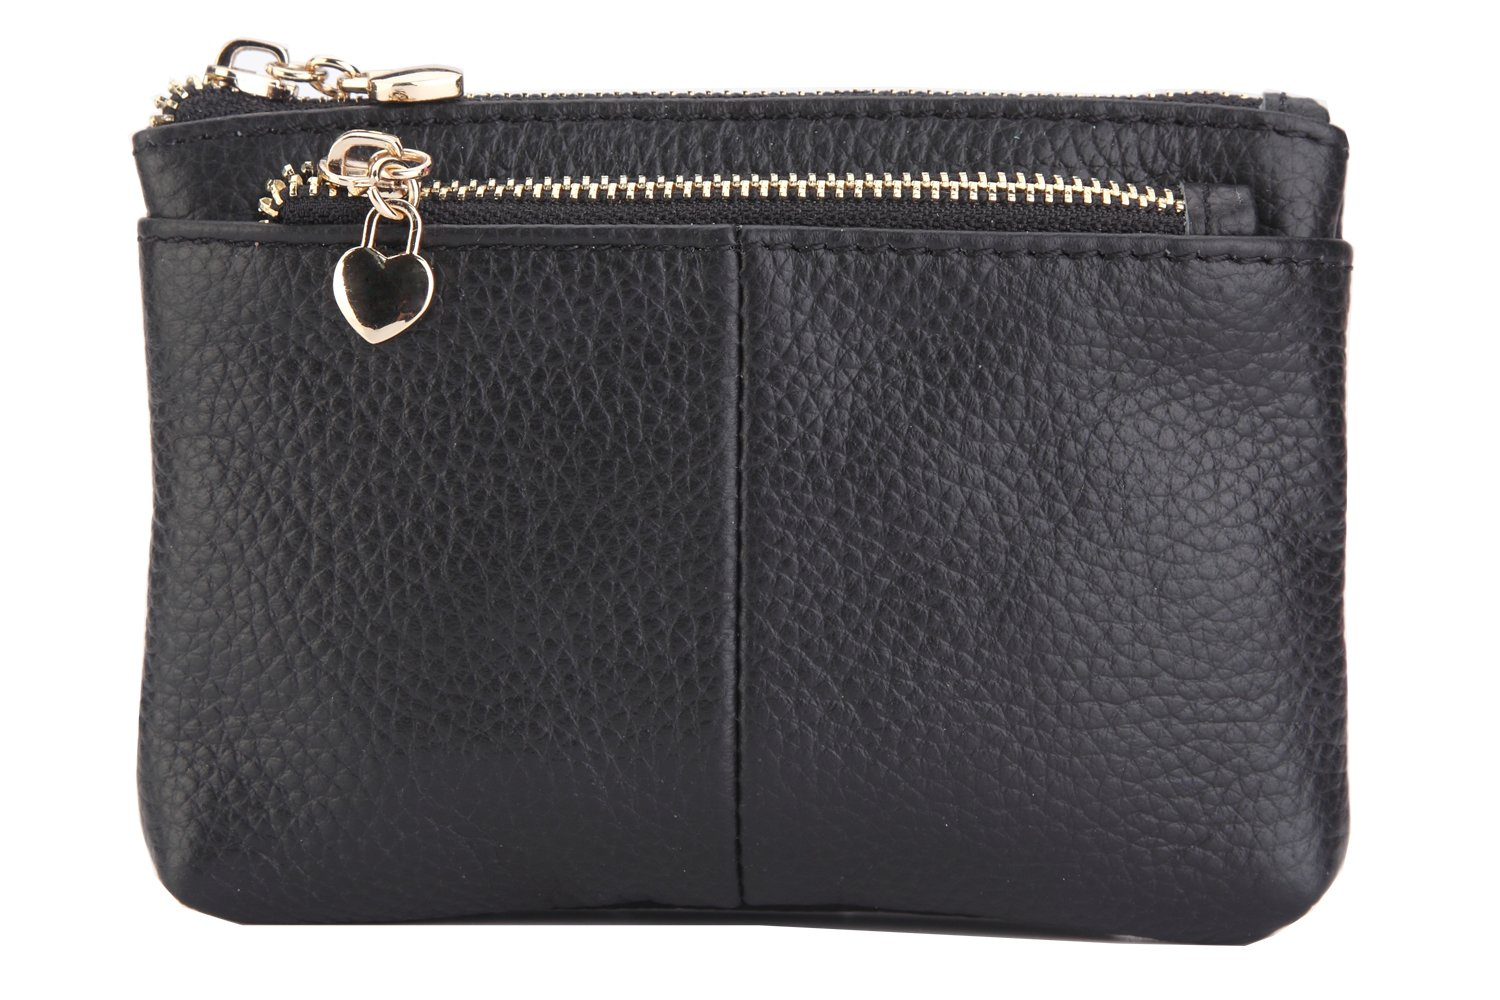 ZORESS Women Genuine Leather Zip Mini Coin Purse With Key Ring Triple Zipper Card Holder Wallet (Black)